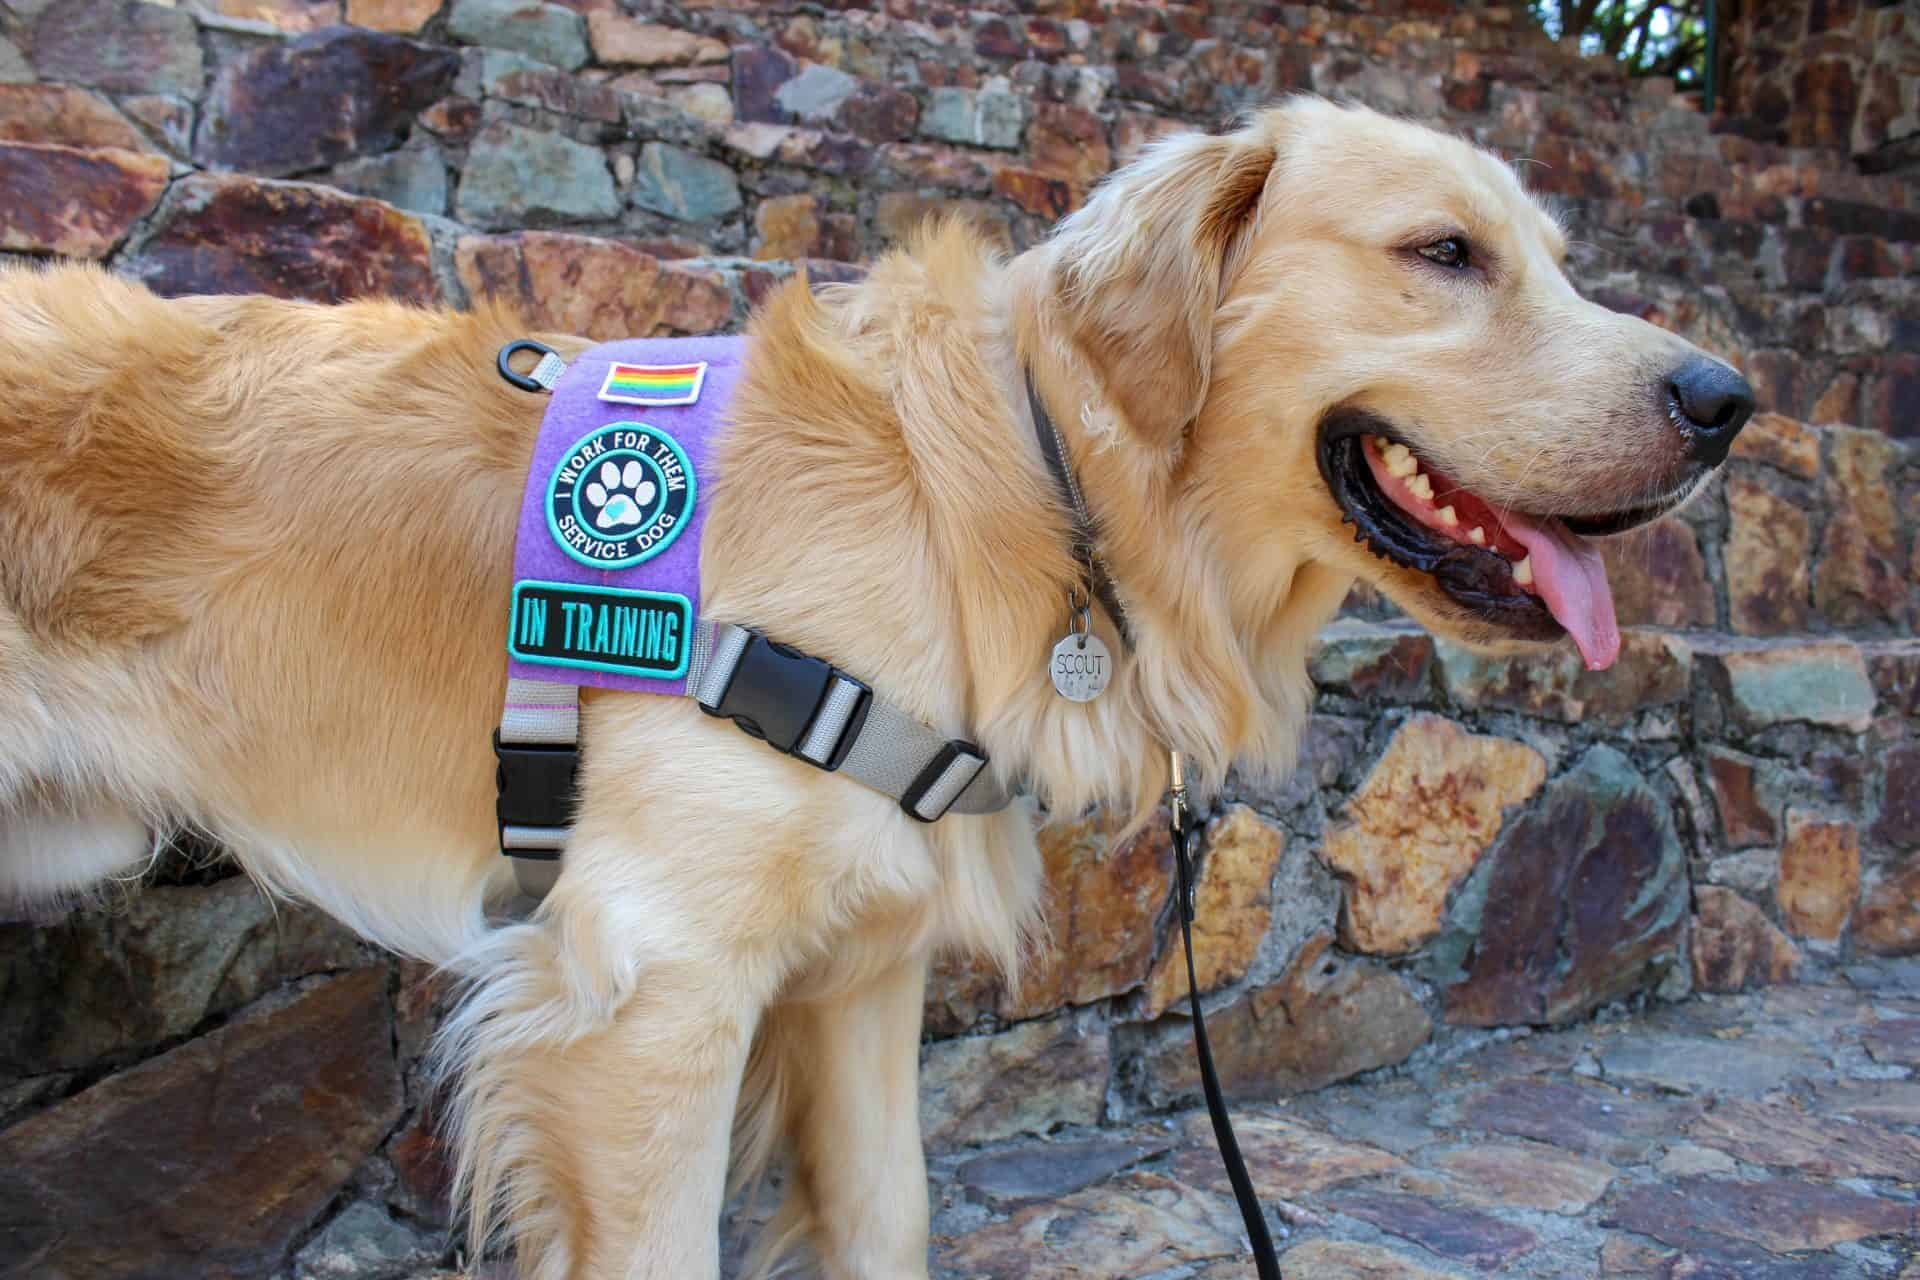 Golden retriever with his mouth open wearing a light purple and grey service dog vest.